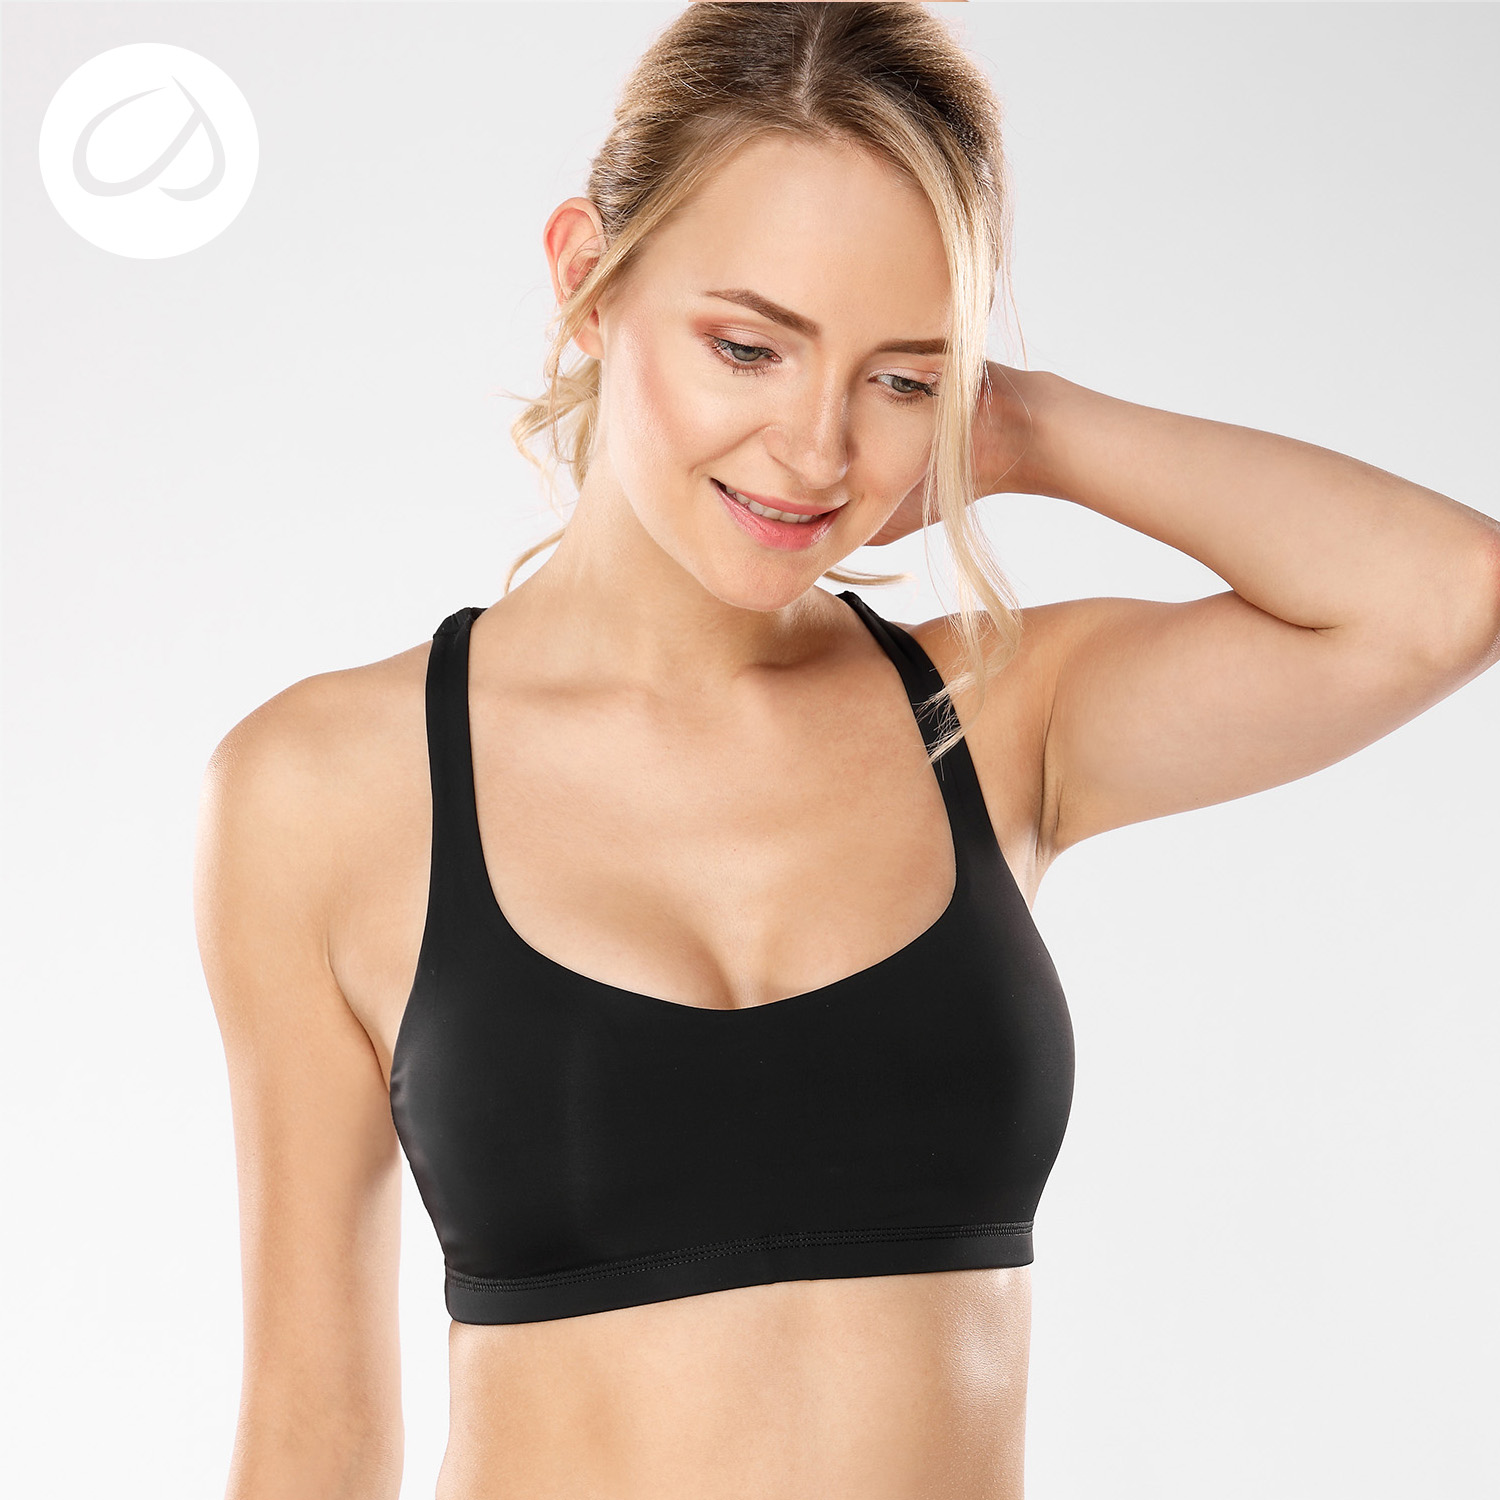 CRZ YOGA Women's Light Support Cross Back Wirefree Removable Cups Yoga Sport Bra crz